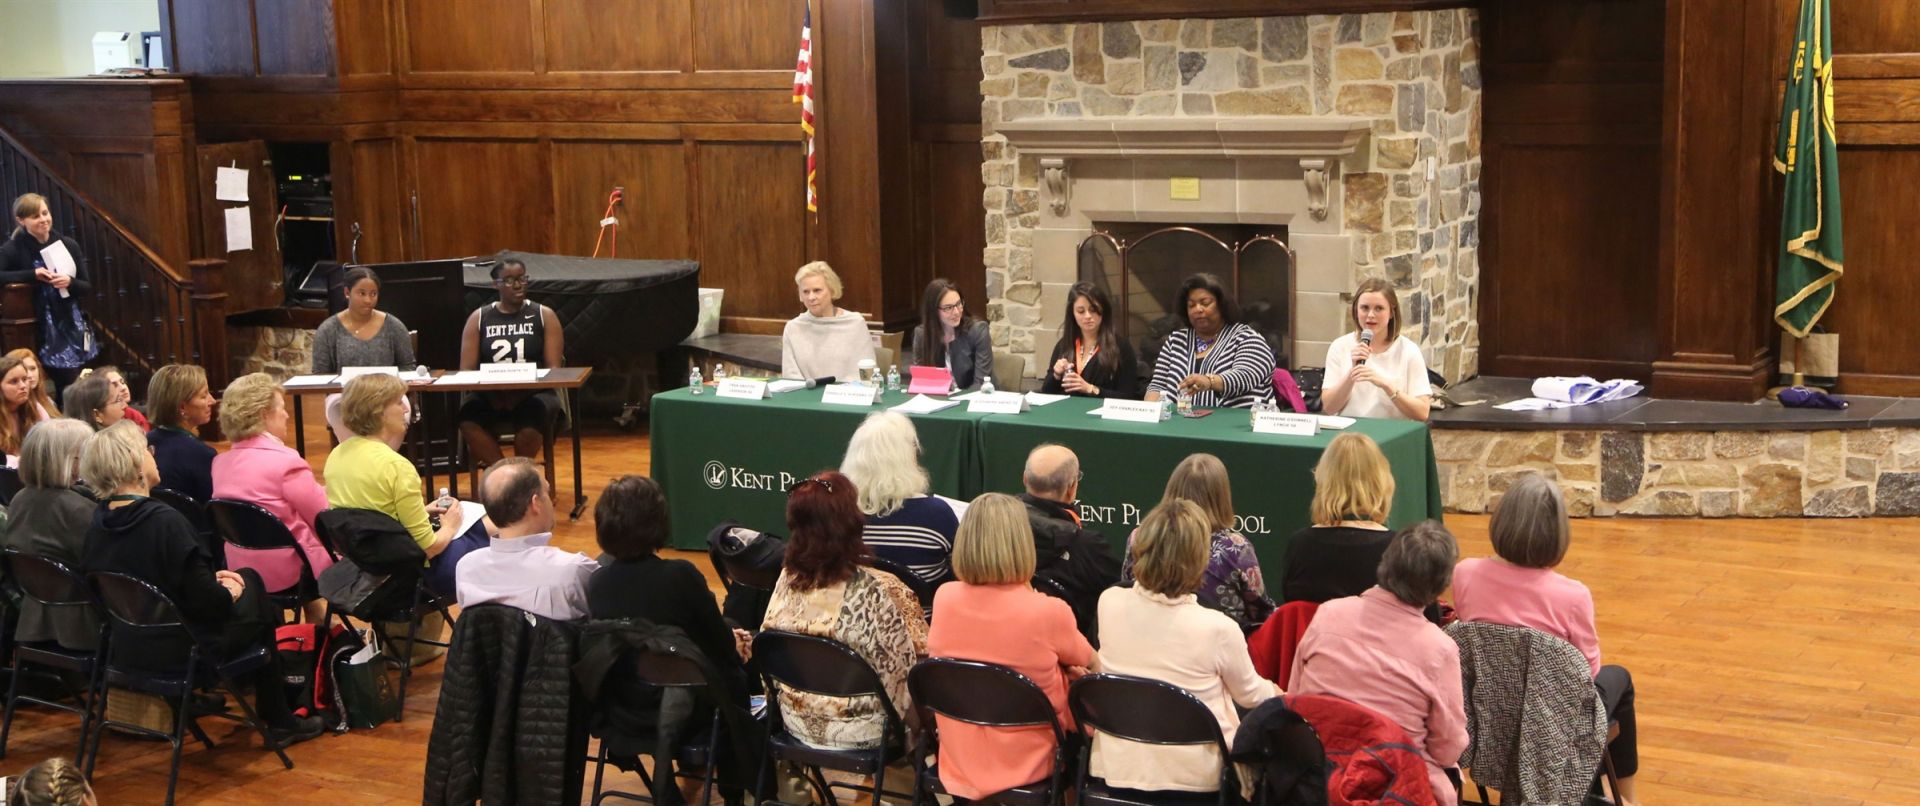 Panelists share their experience with the 50th reunion class, the Class of 1966, other alumnae and the Upper School student body